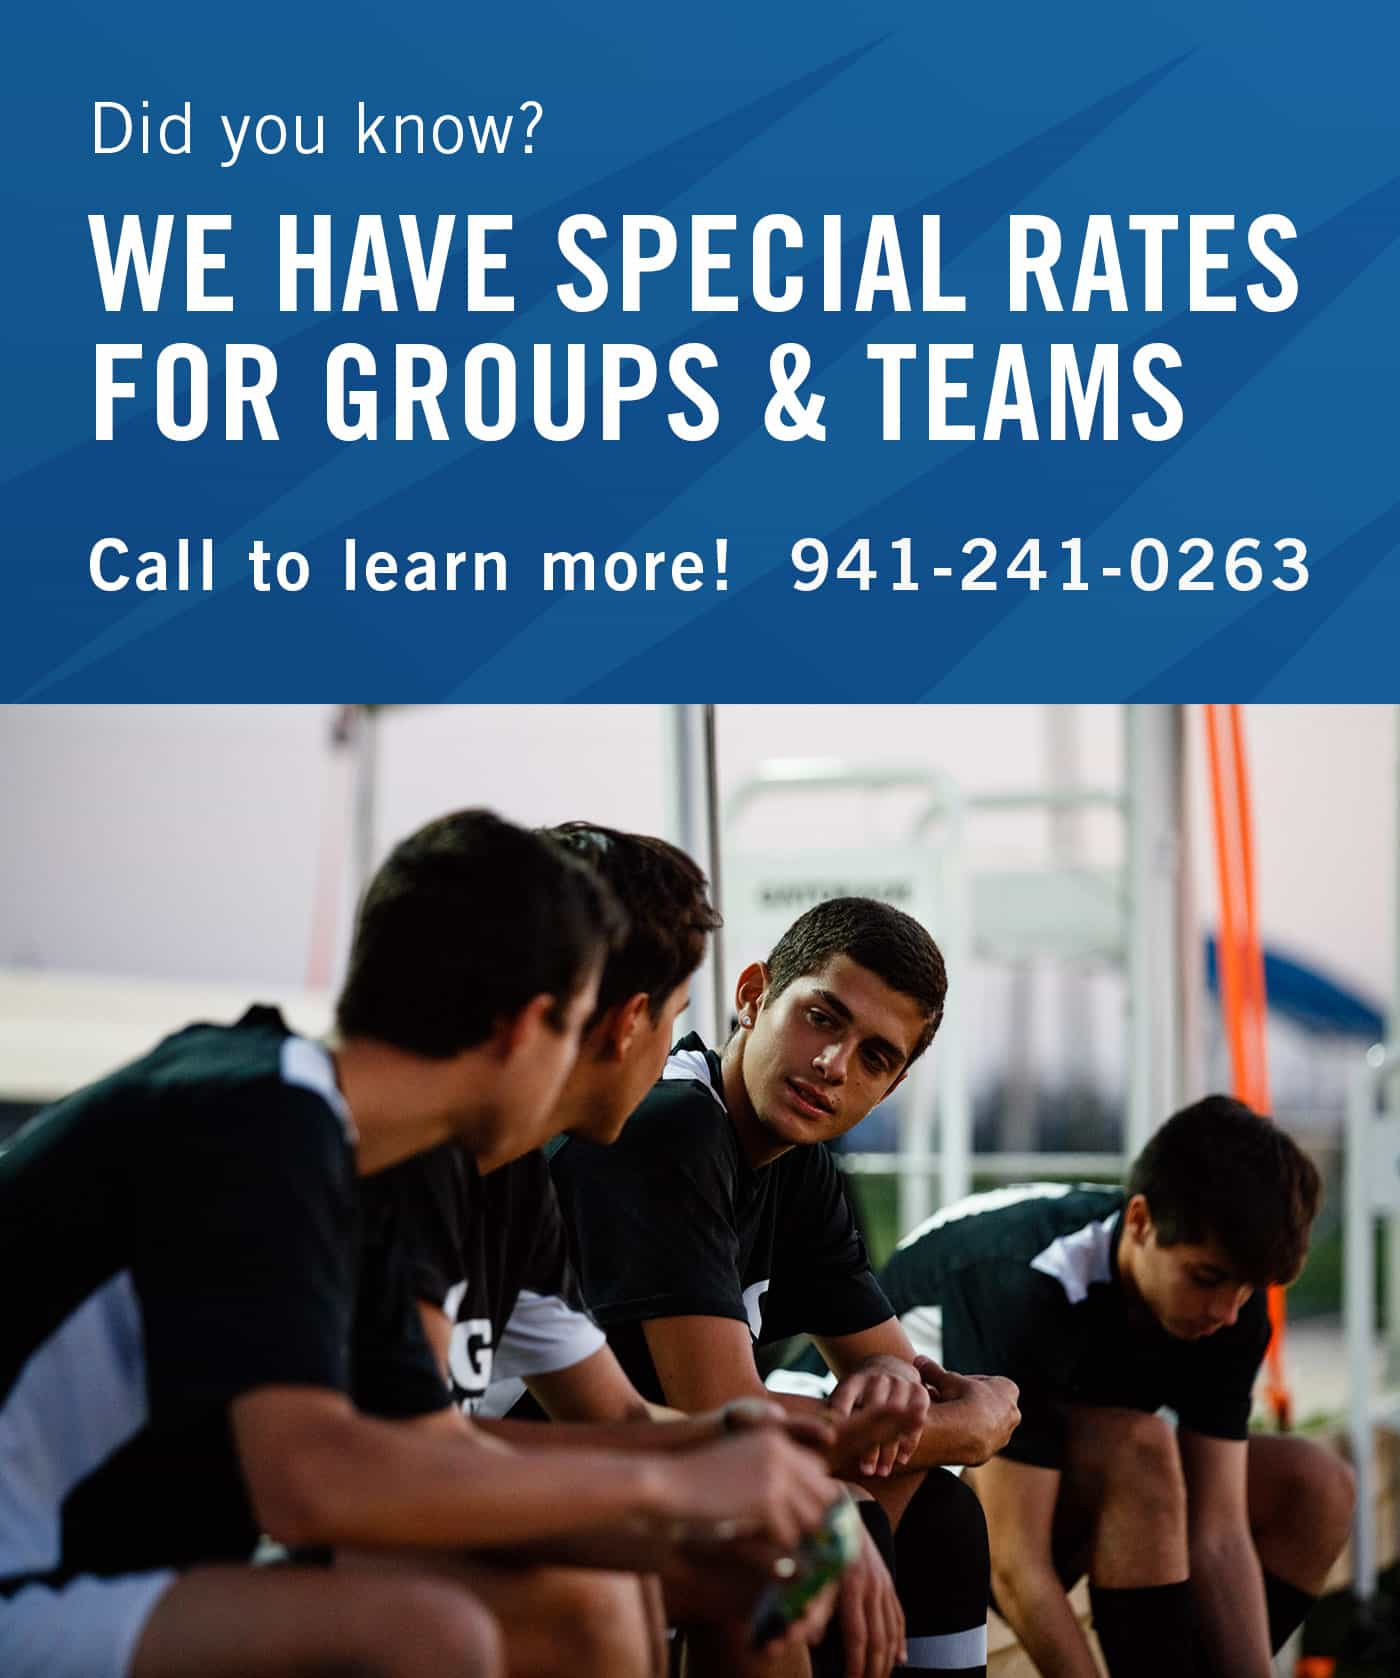 Call 1-941-241-0263 for Camp Group Discount Rates